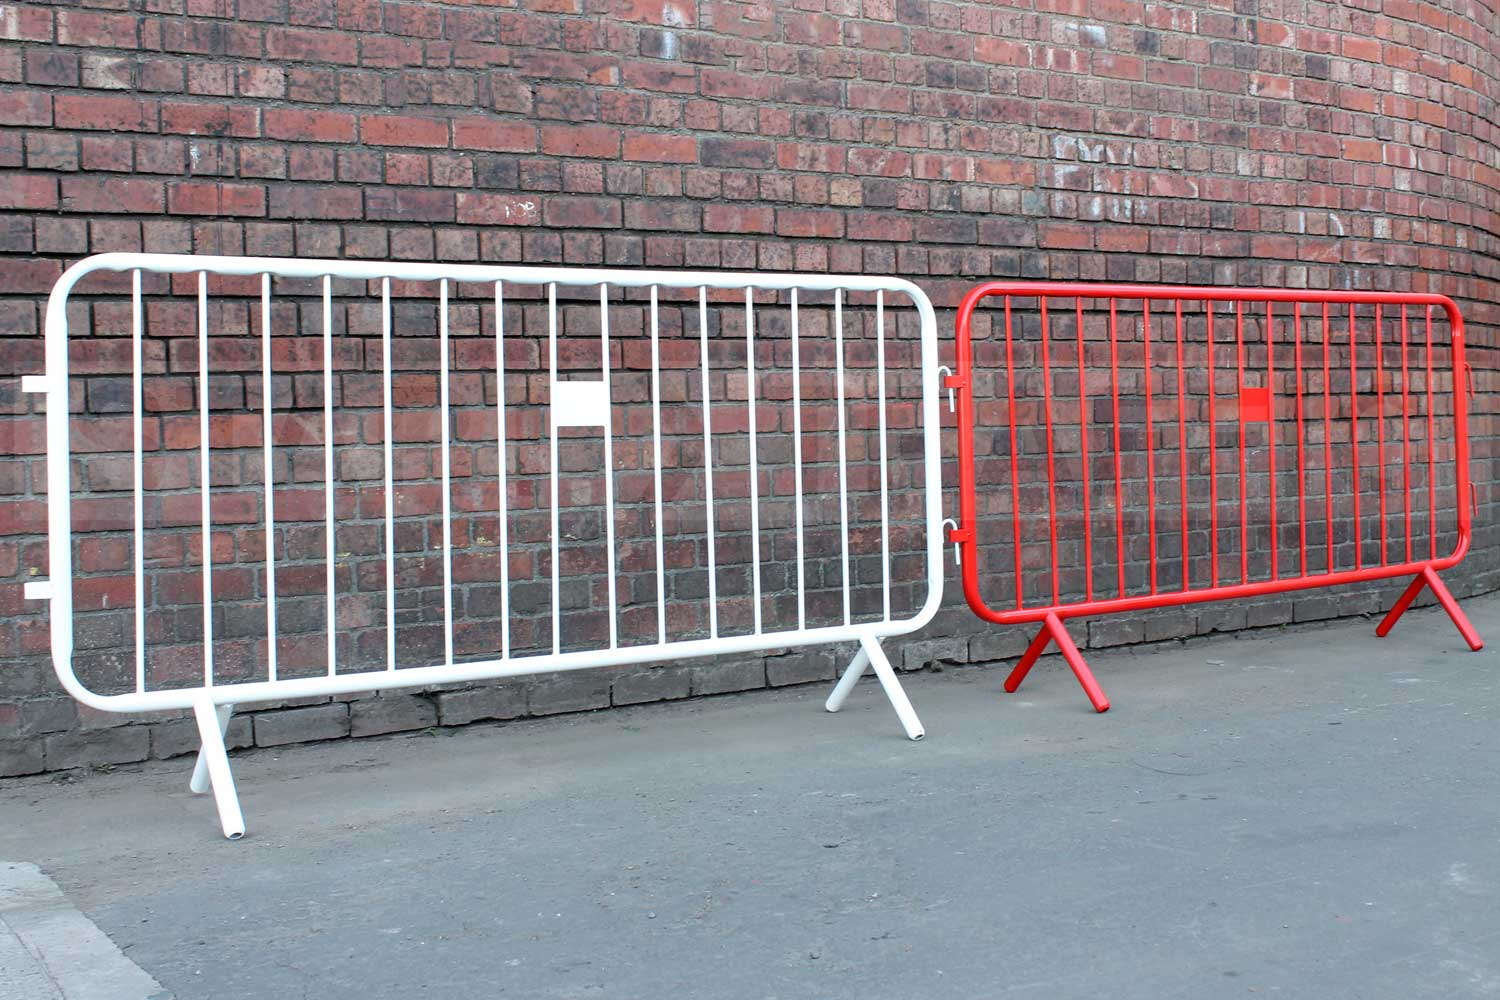 image of red and white fixed leg crowd barriers